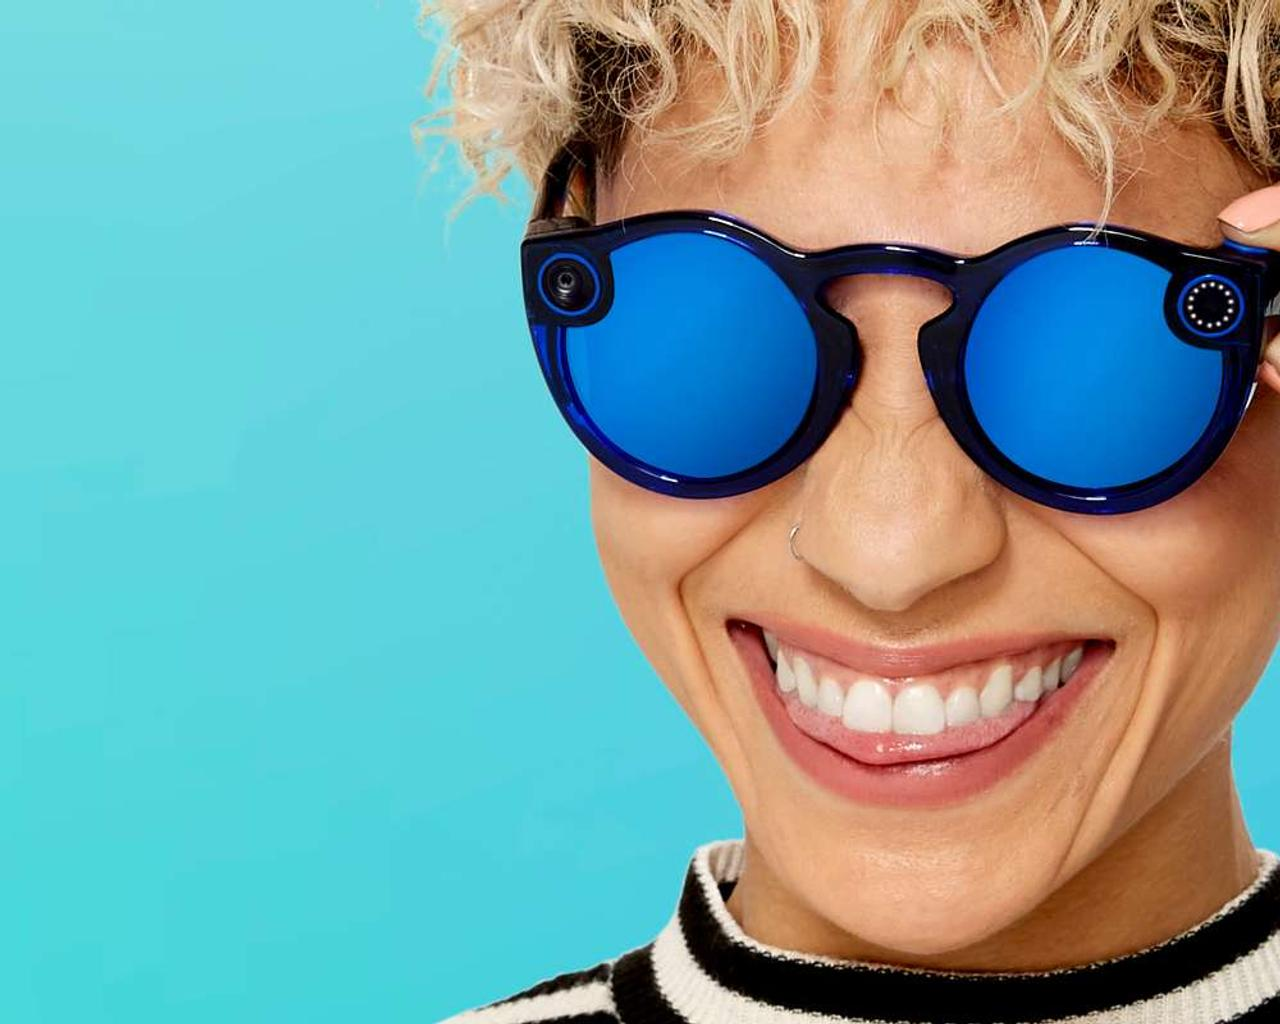 Snapchat unveils redesigned Spectacles sunglasses with hefty price tag